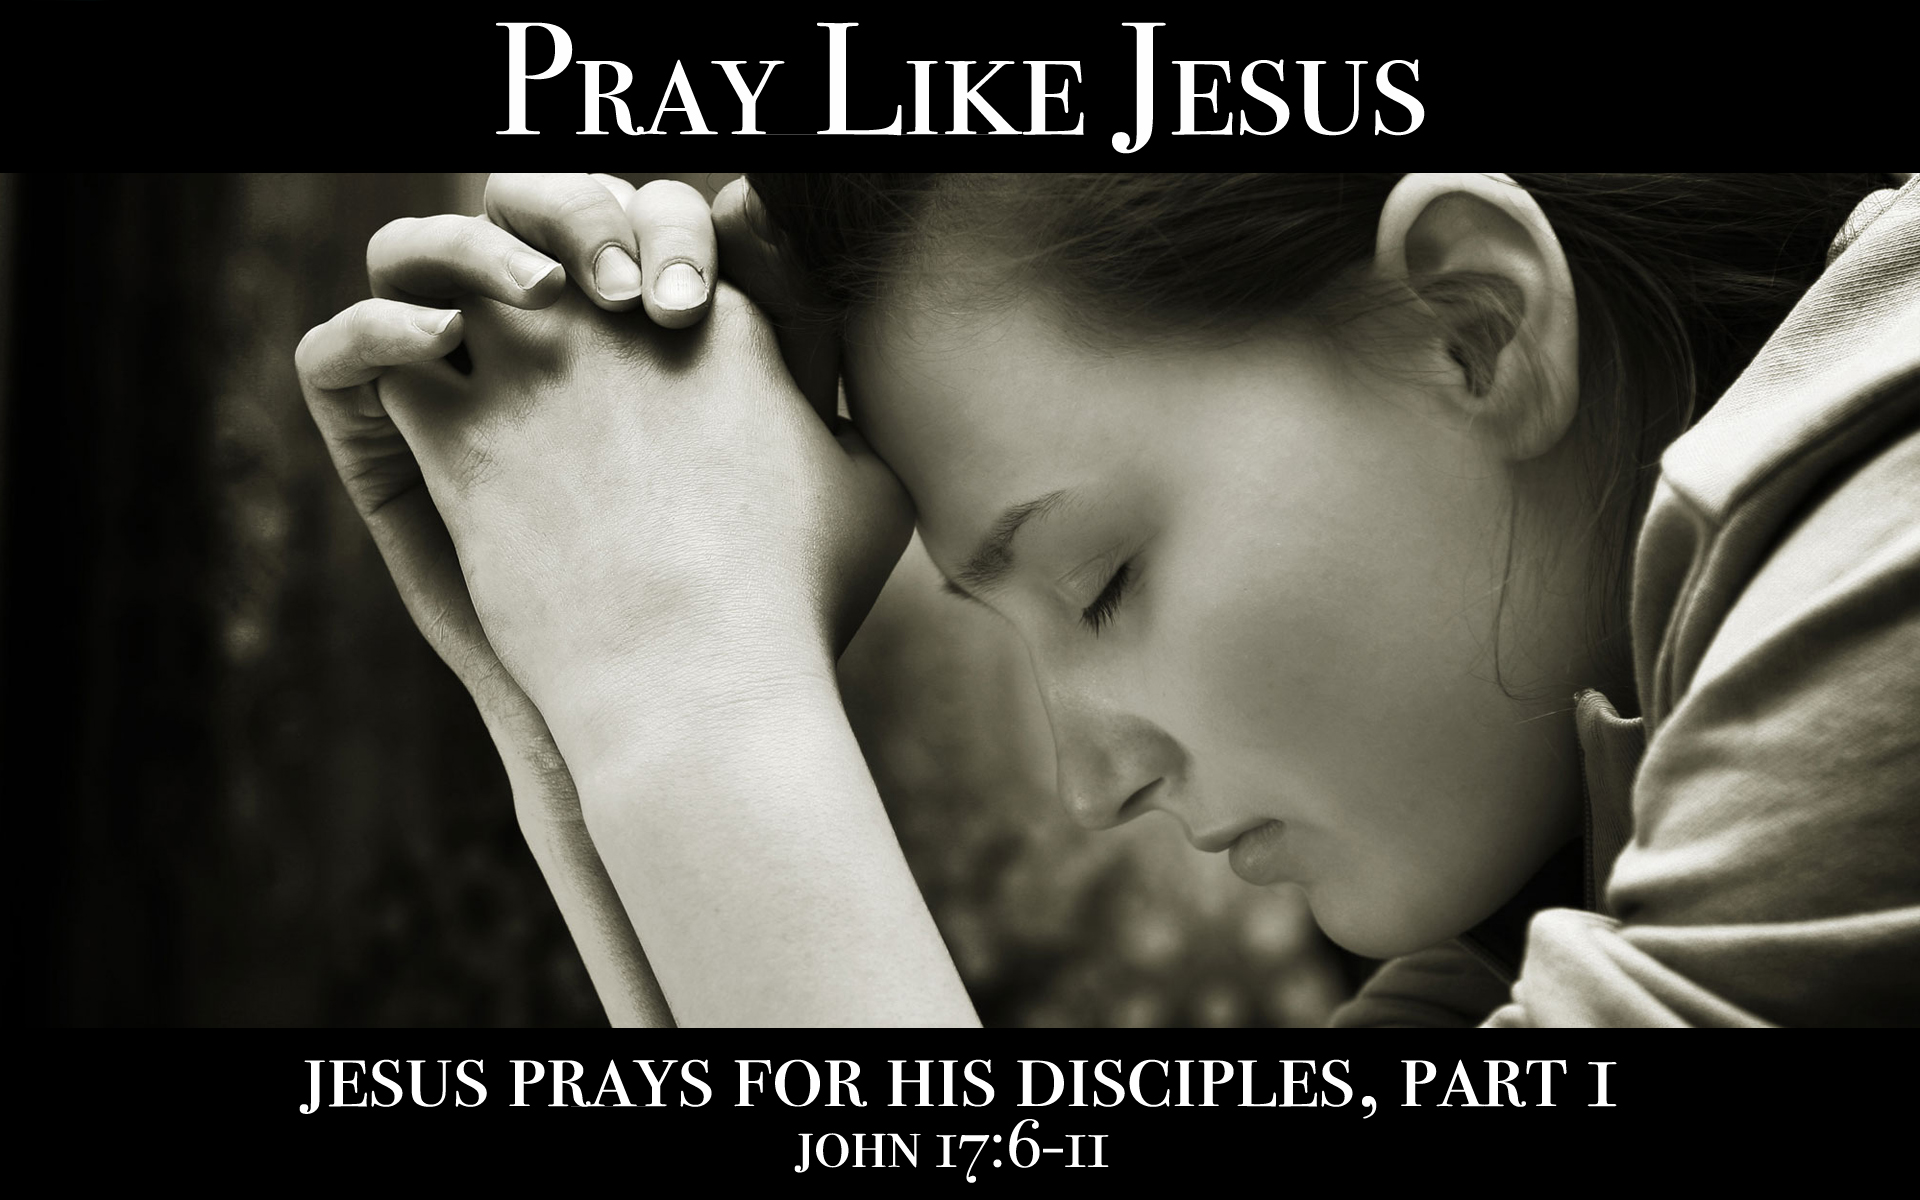 Jesus Prays for His Disciples (Part 1)